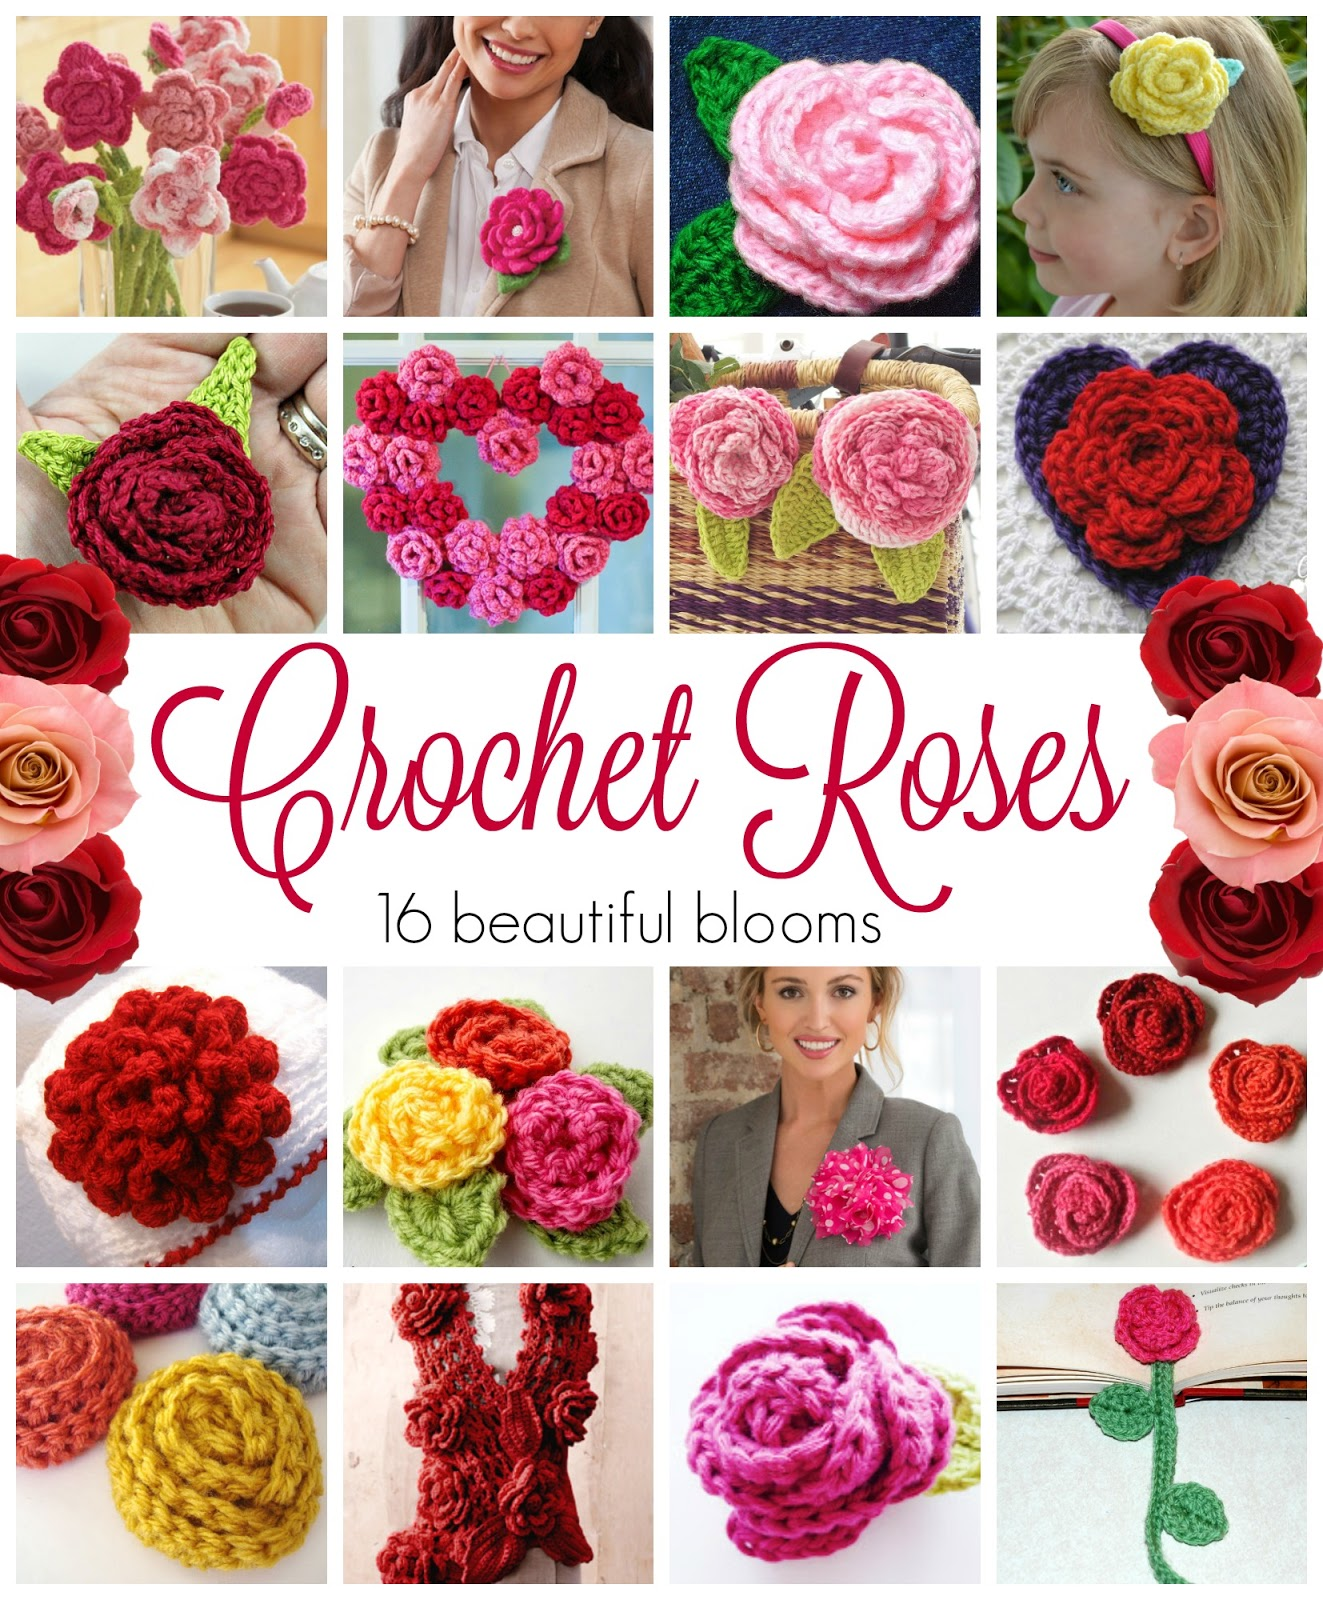 Crochet Thread Rose Pattern Free : Fiber Flux: Crochet Roses! 16 Free Crochet Patterns...